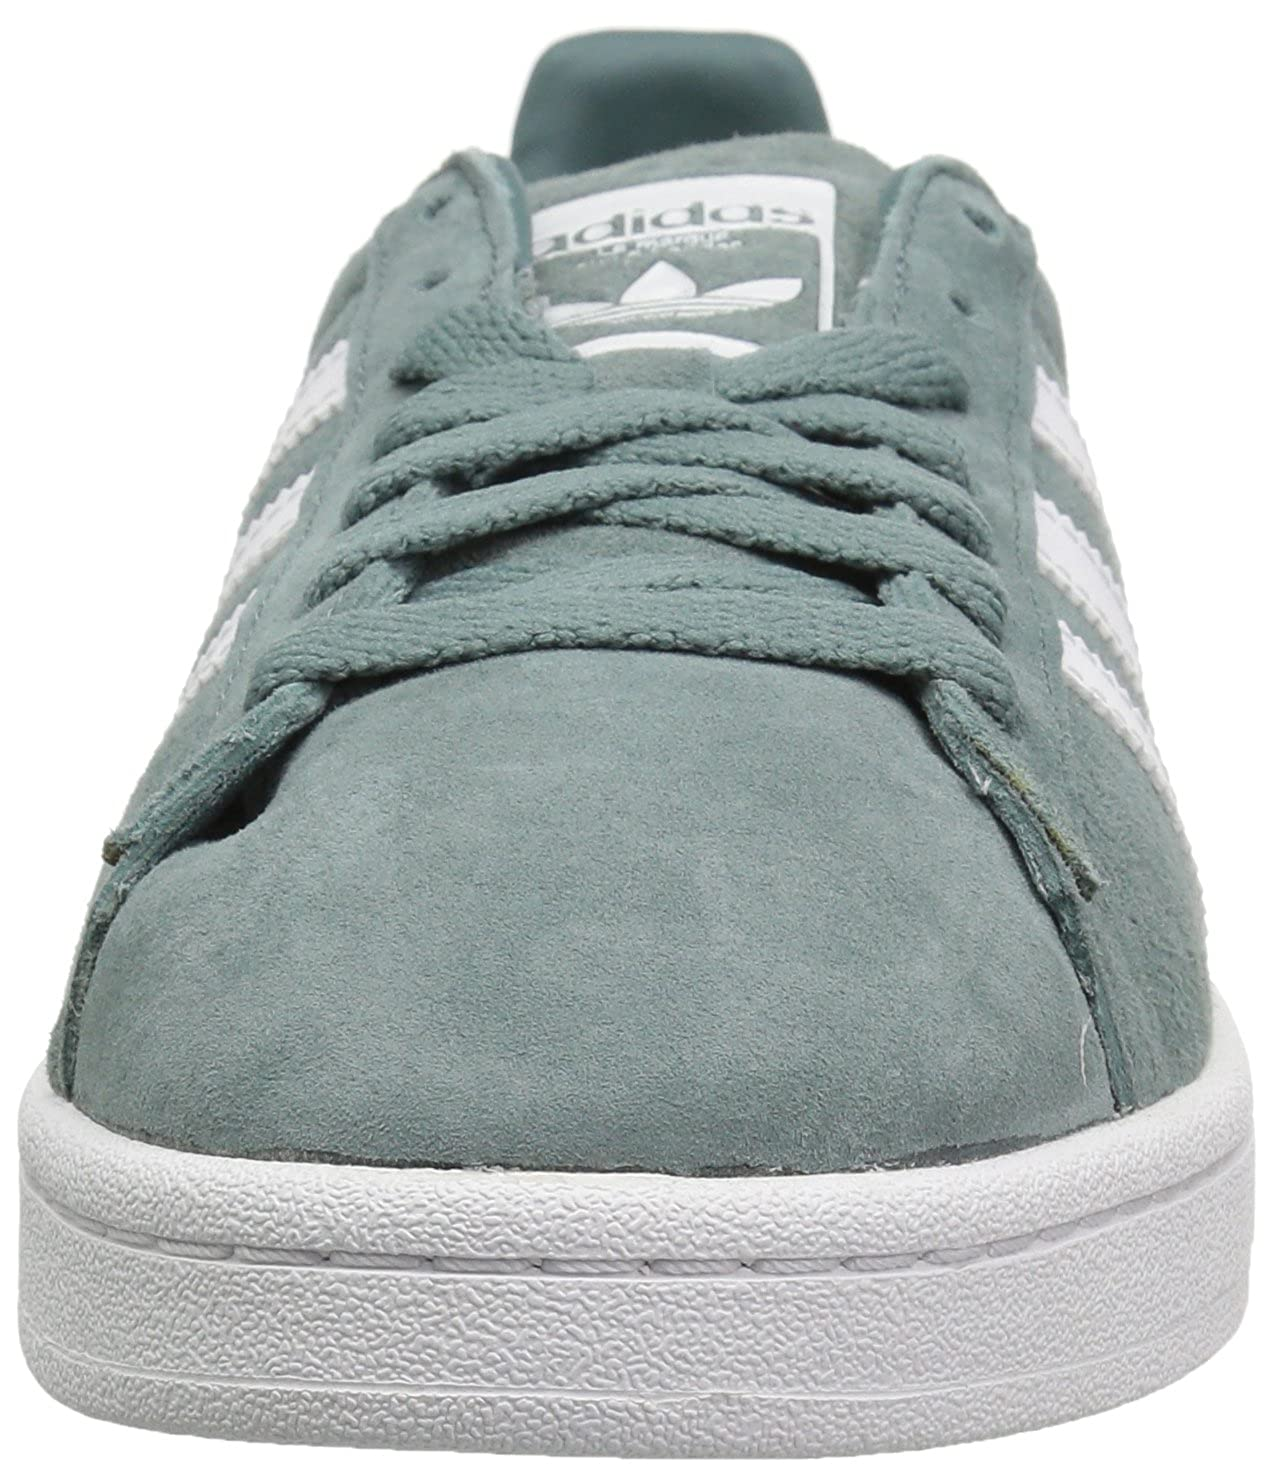 Adidas-Campus-Men-039-s-Casual-Fashion-Sneakers-Retro-Athletic-Shoes thumbnail 43